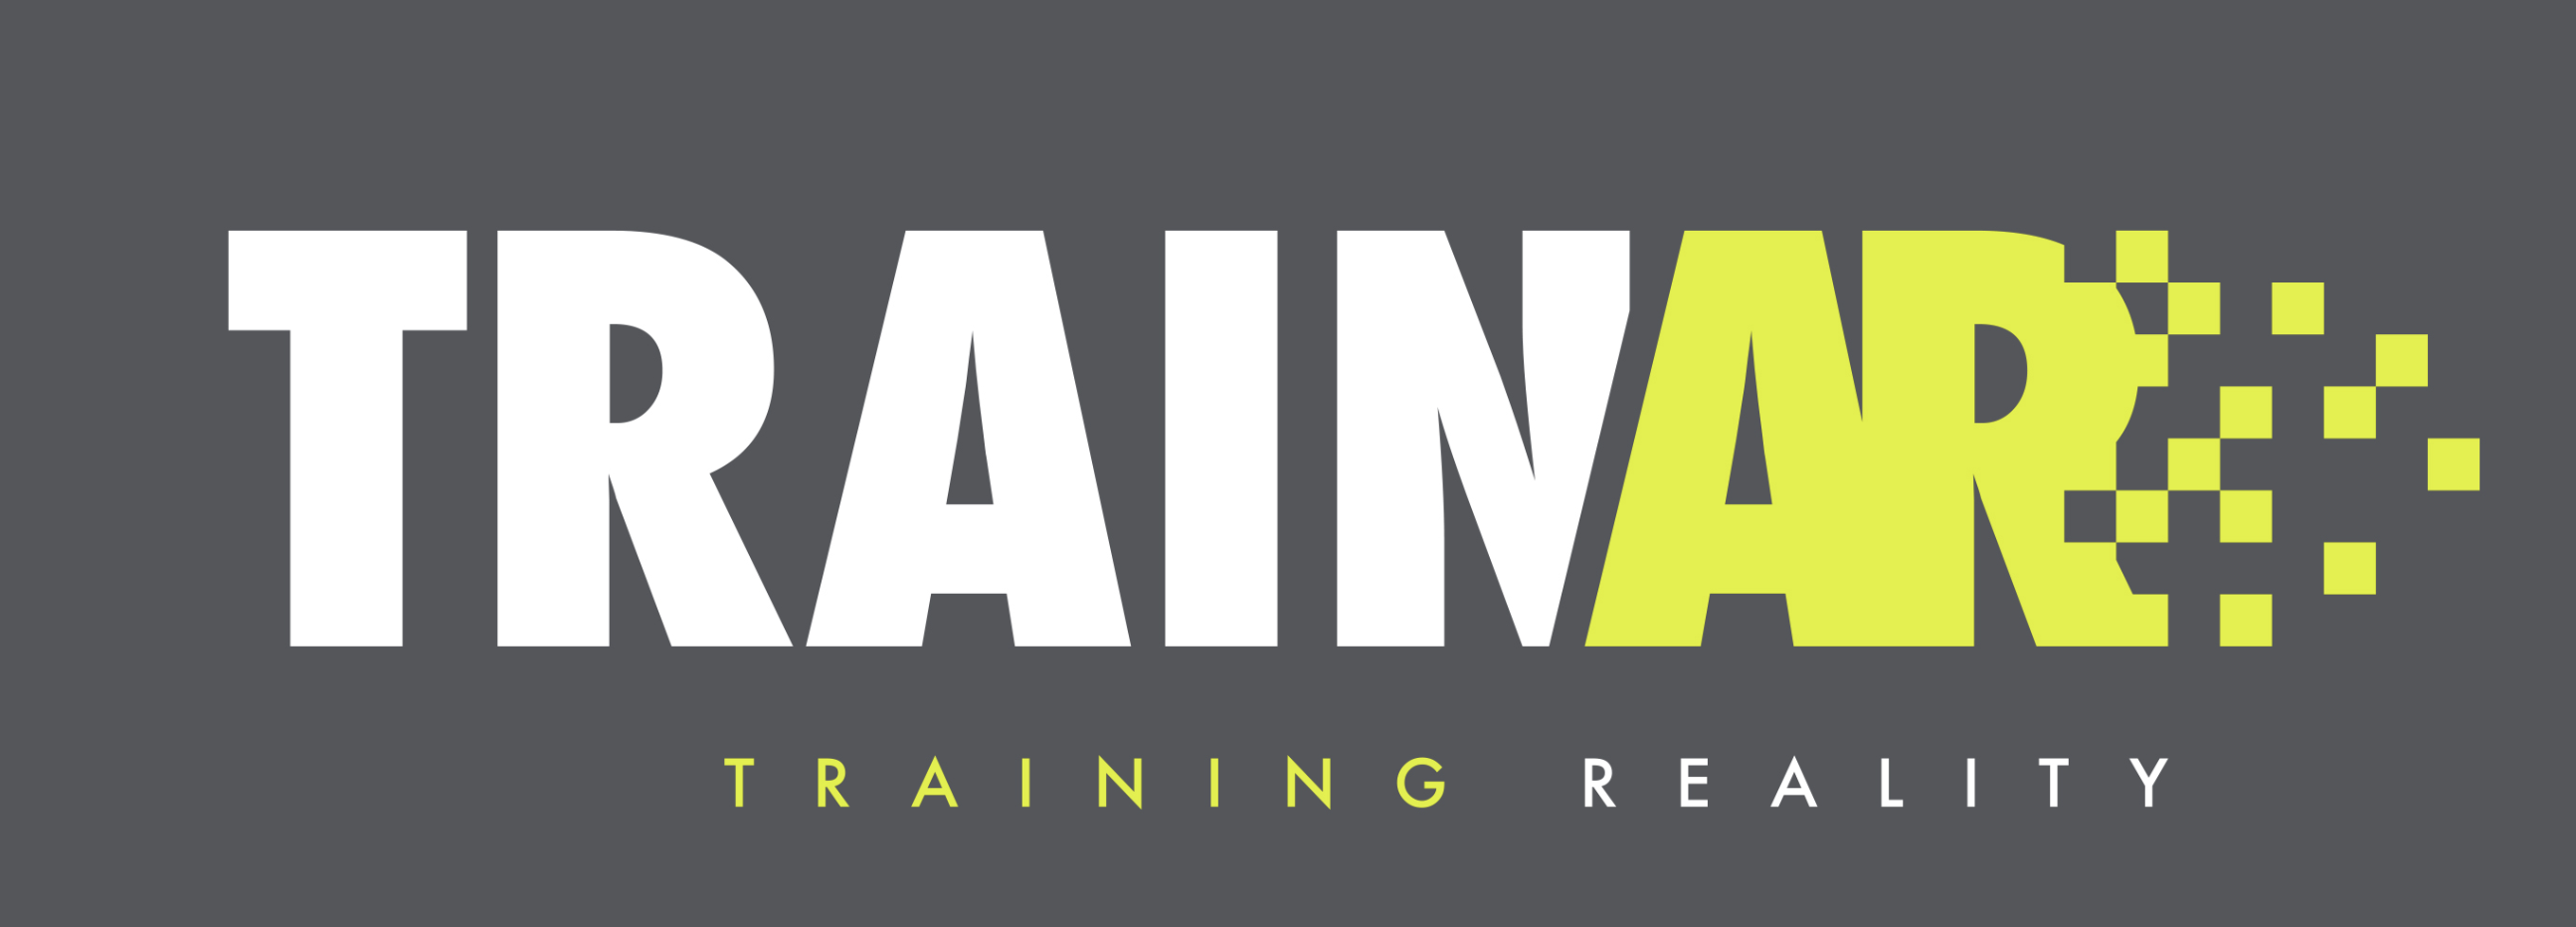 TrainAR - The way of to find personal training clients